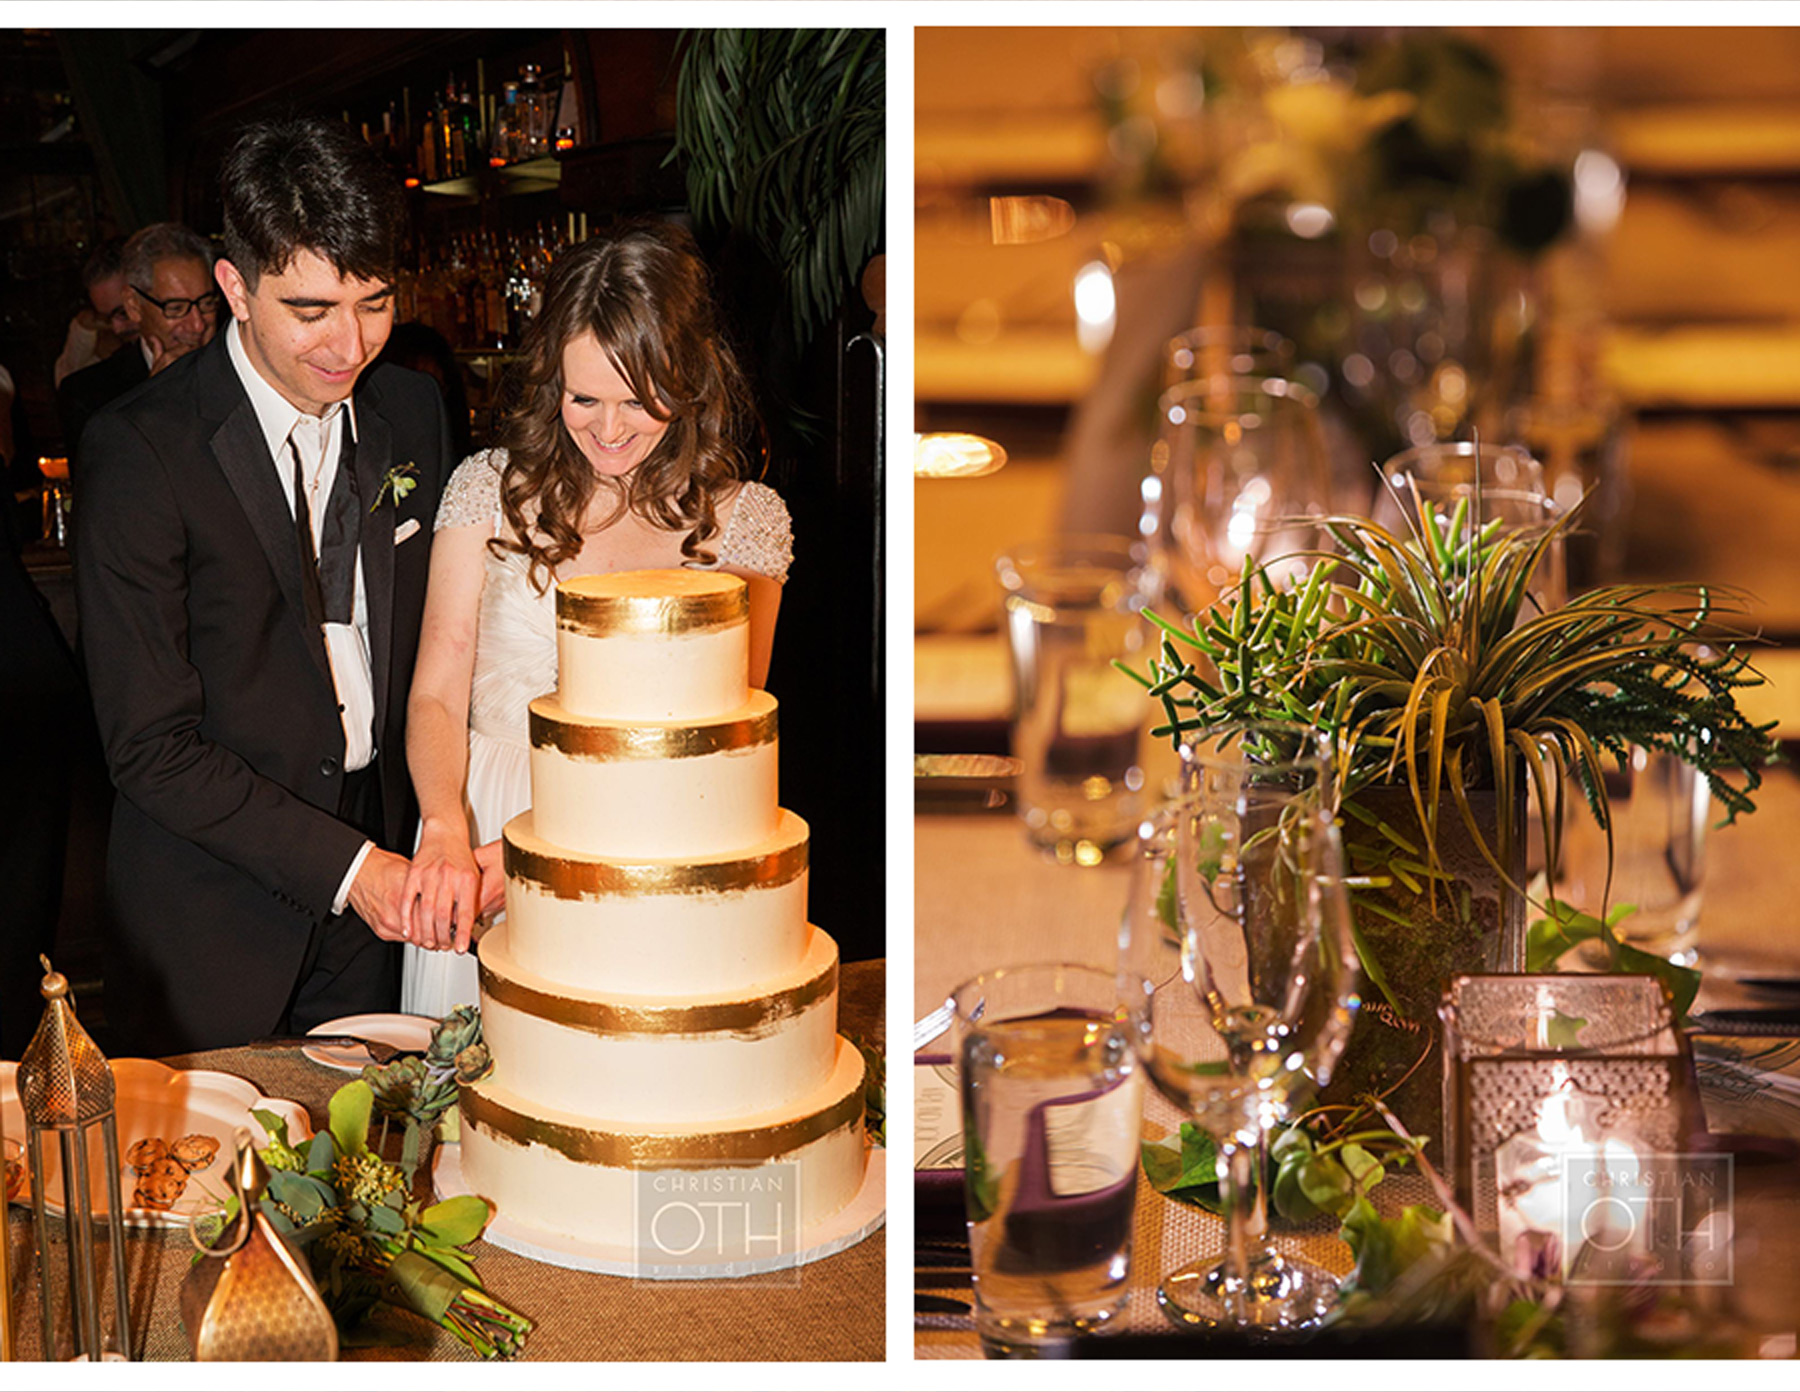 Our Muse - Modern Art Deco Wedding in New York: Kari and Joe, Part 4 - Be inspired by Kari and Joe's modern art deco wedding in New York. - reception, wedding, ceci new york, inspiration, ceci johnson, celebration, bride, groom, event, luxury wedding invitations,  couture, custom wedding invitations, ceci new york, christian oth photography, the bowery hotel, lyndsey hamilton events, belle fleur, nine cakes, lucy music, damali nyc, reem acra, jimmie choo, amsale, jenny packham